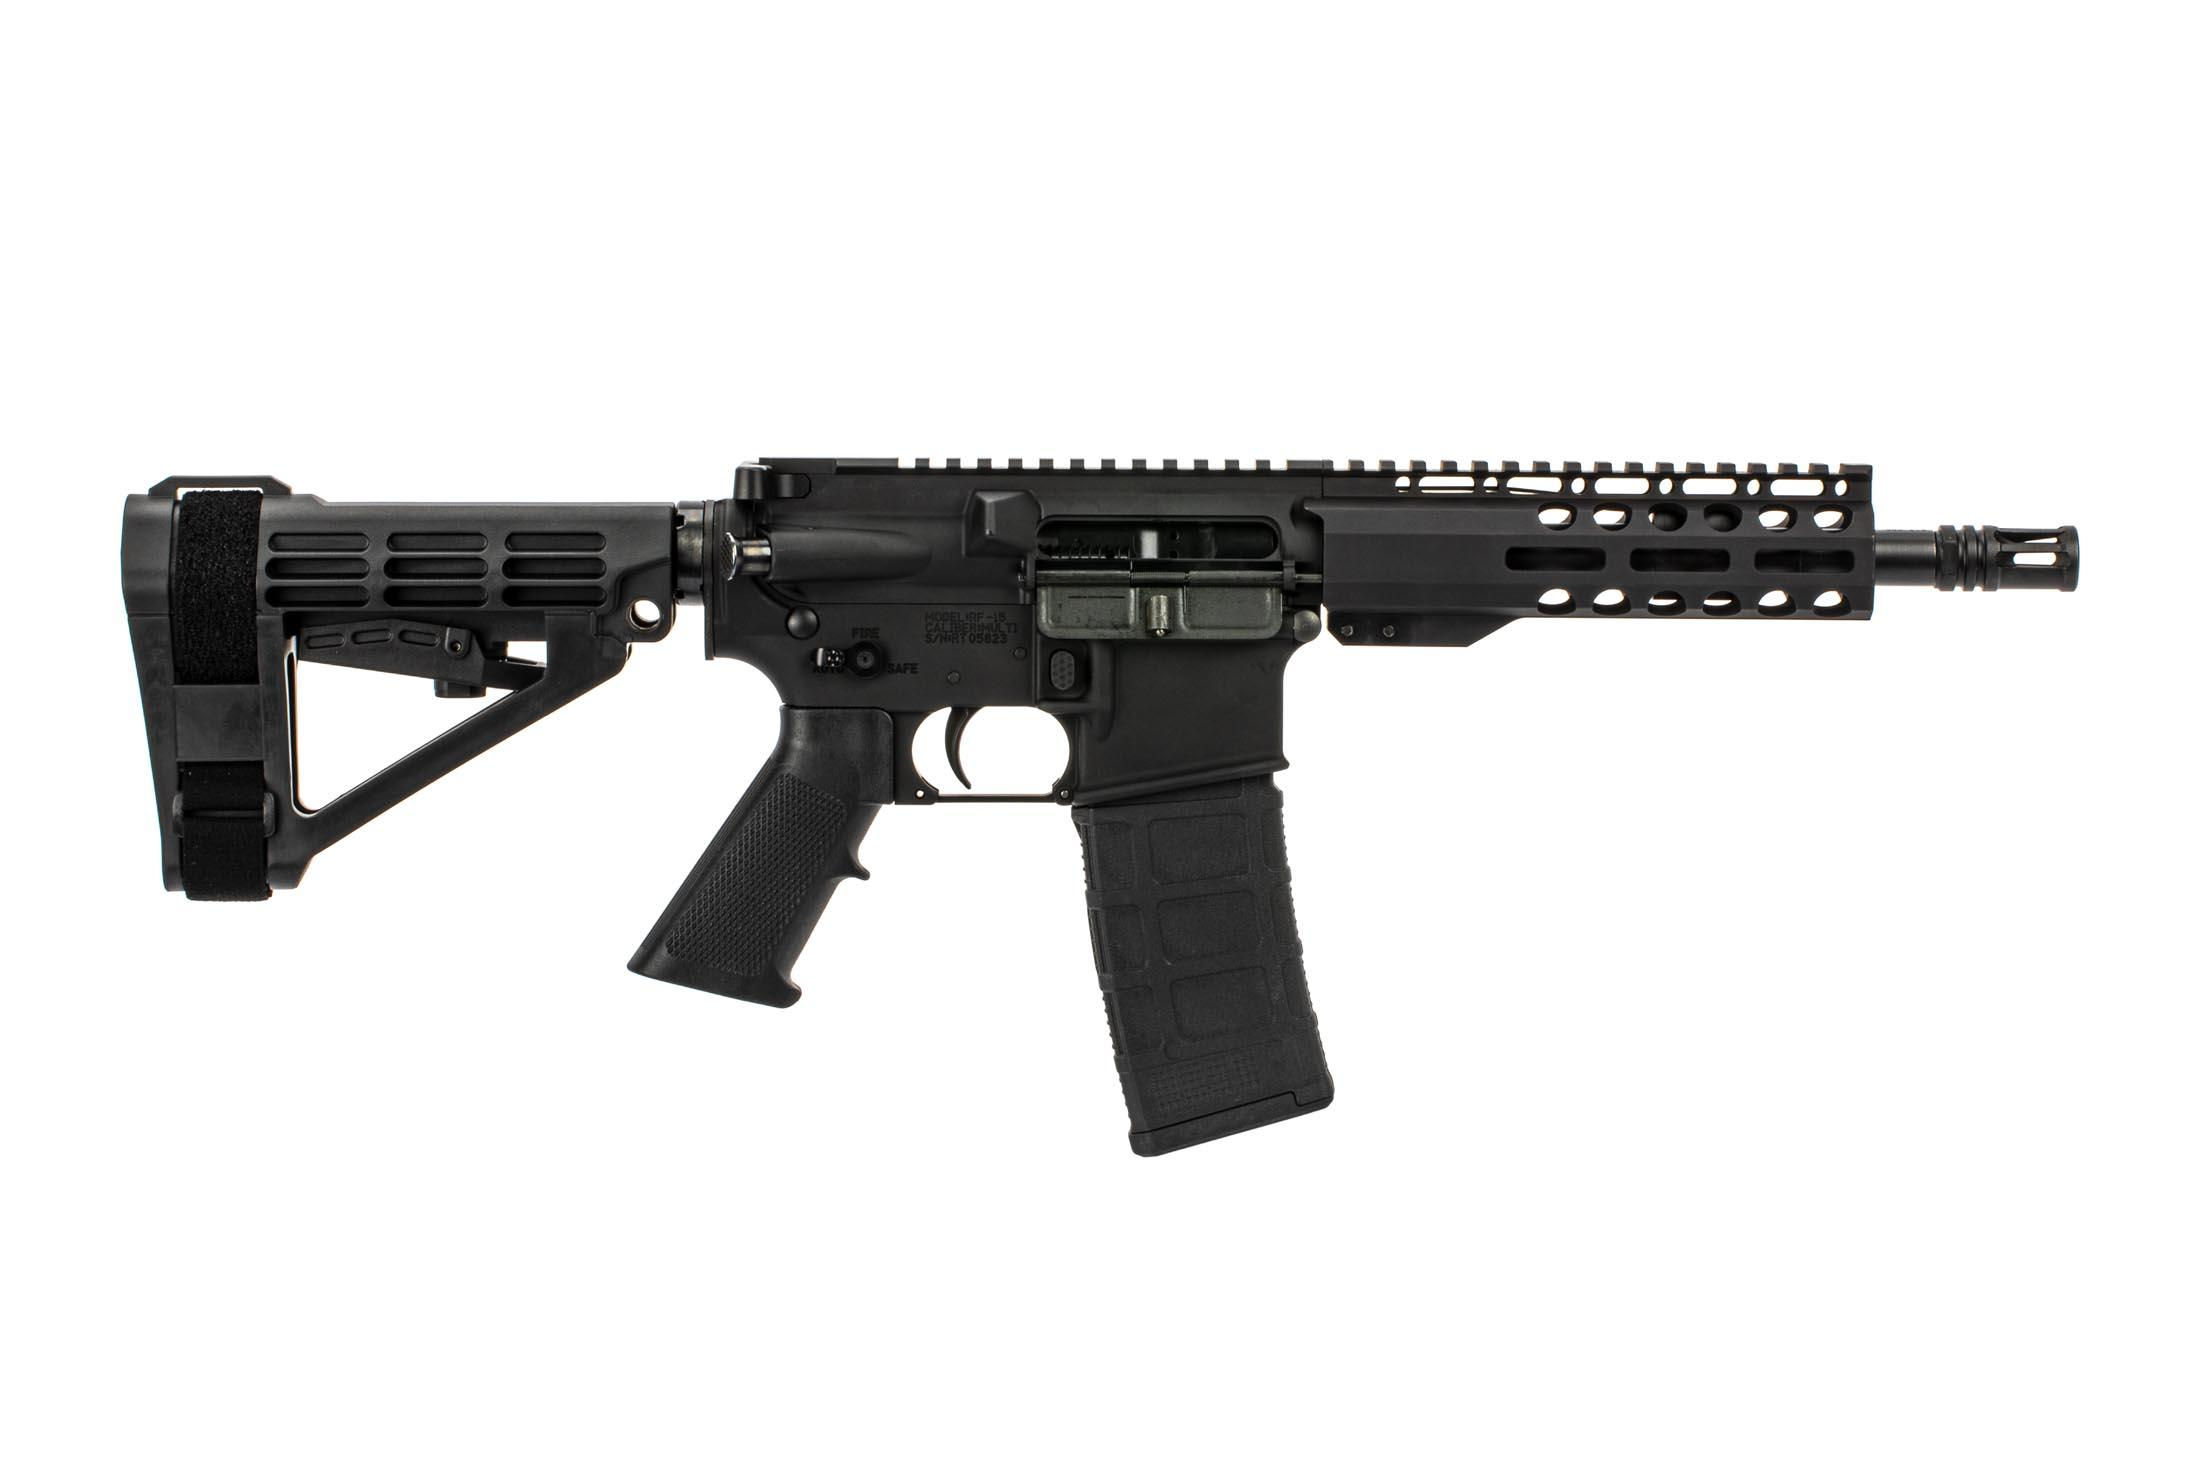 The Radical Firearms .300 Blackout AR15 pistol features the Primary Arms Exclusive M-LOK handguard